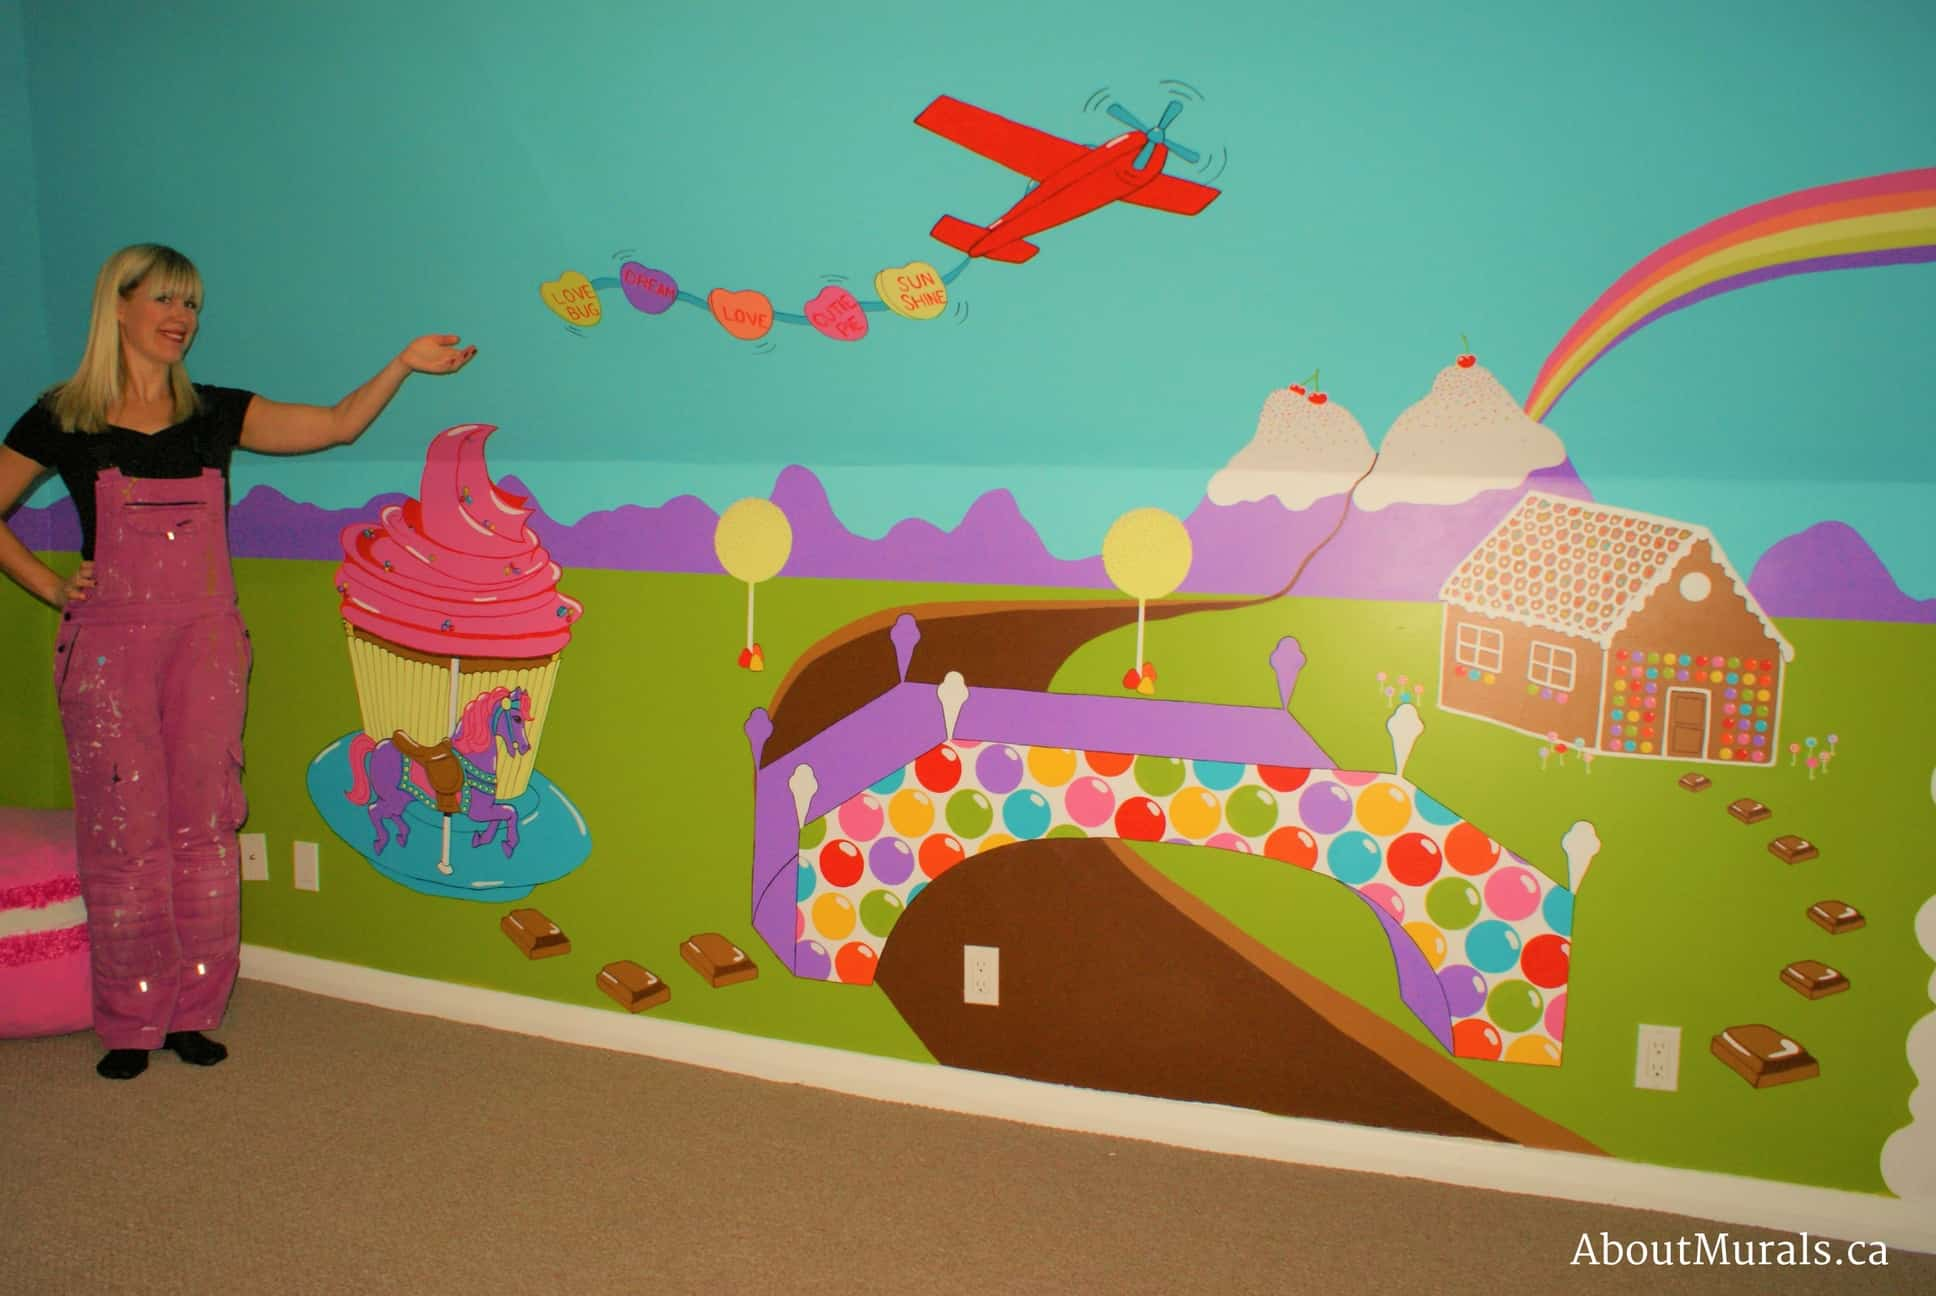 A candy mural, painted by Adrienne of AboutMurals.ca, features a cupcake carousel, a plane totting sweet tart candies, a bubble gum bridge, gingerbread house, ice cream mountains, flowing chocolate river and chocolate stepping stones.